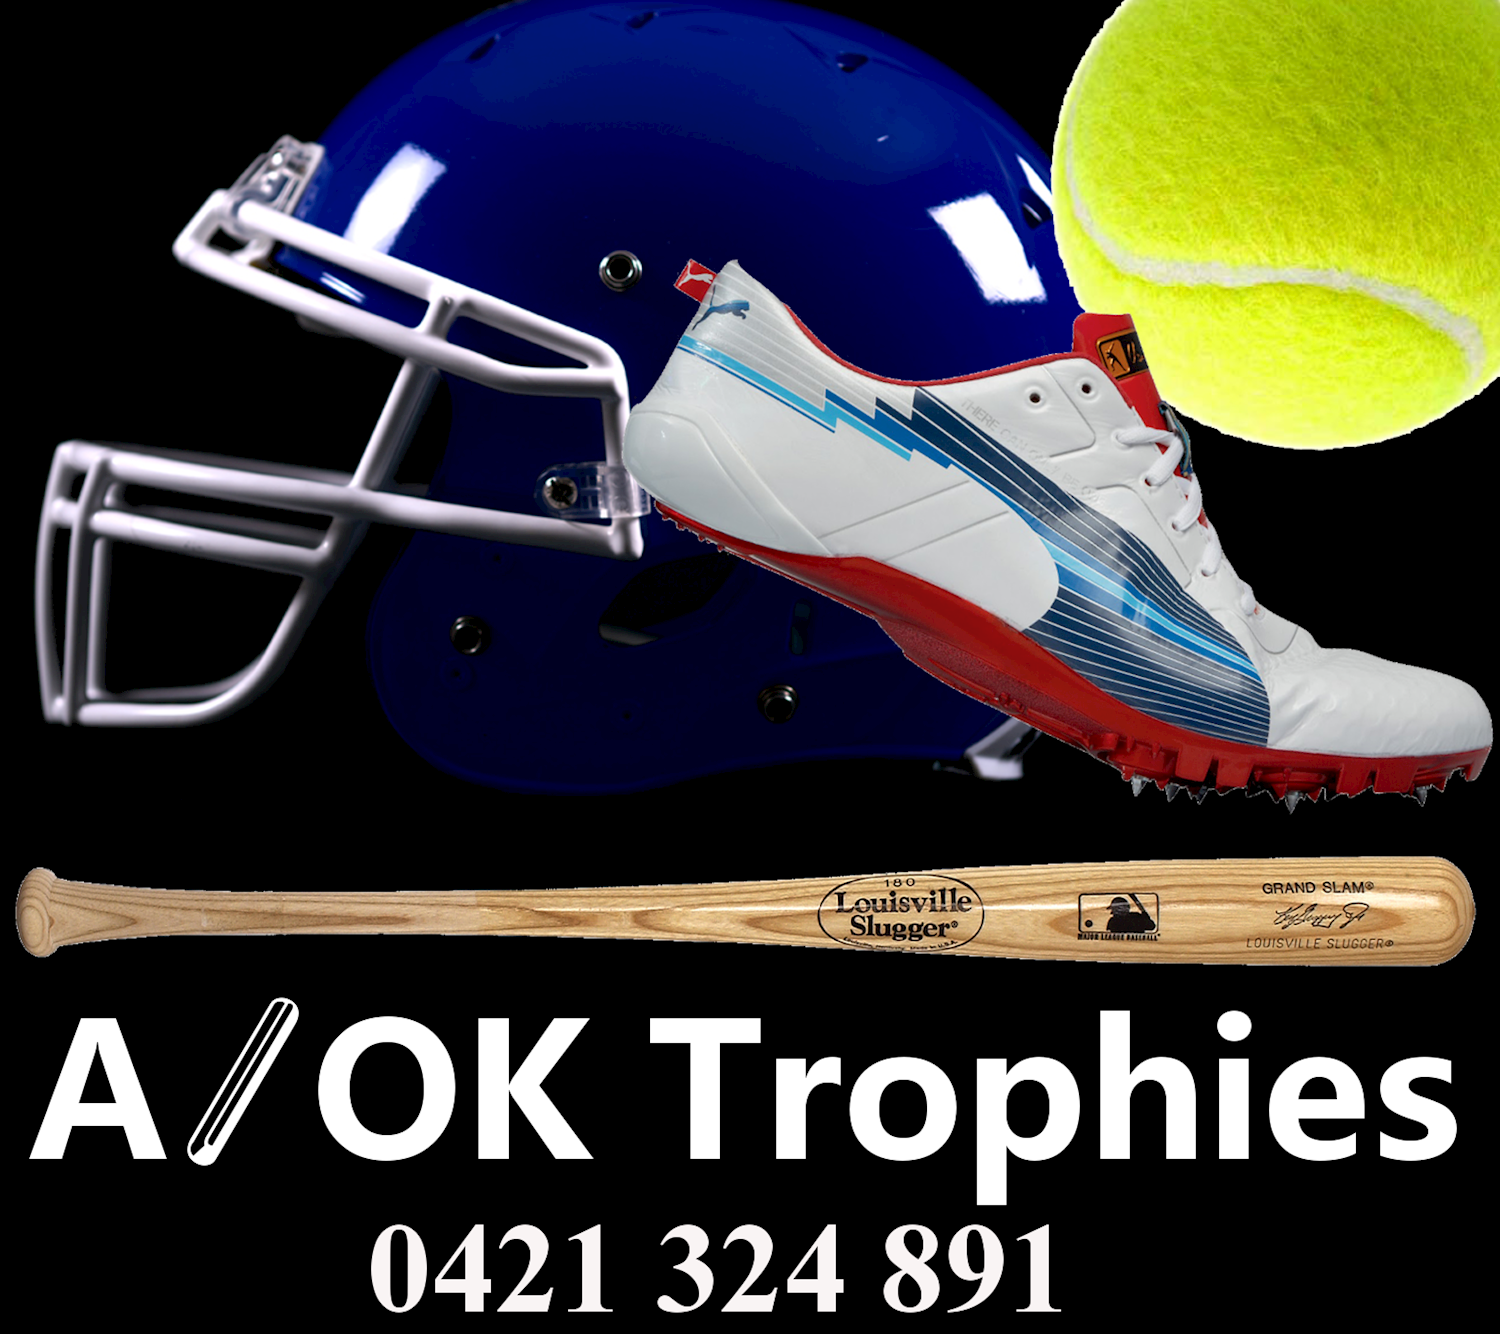 Thank You To Our Sponsors AOK Trophies